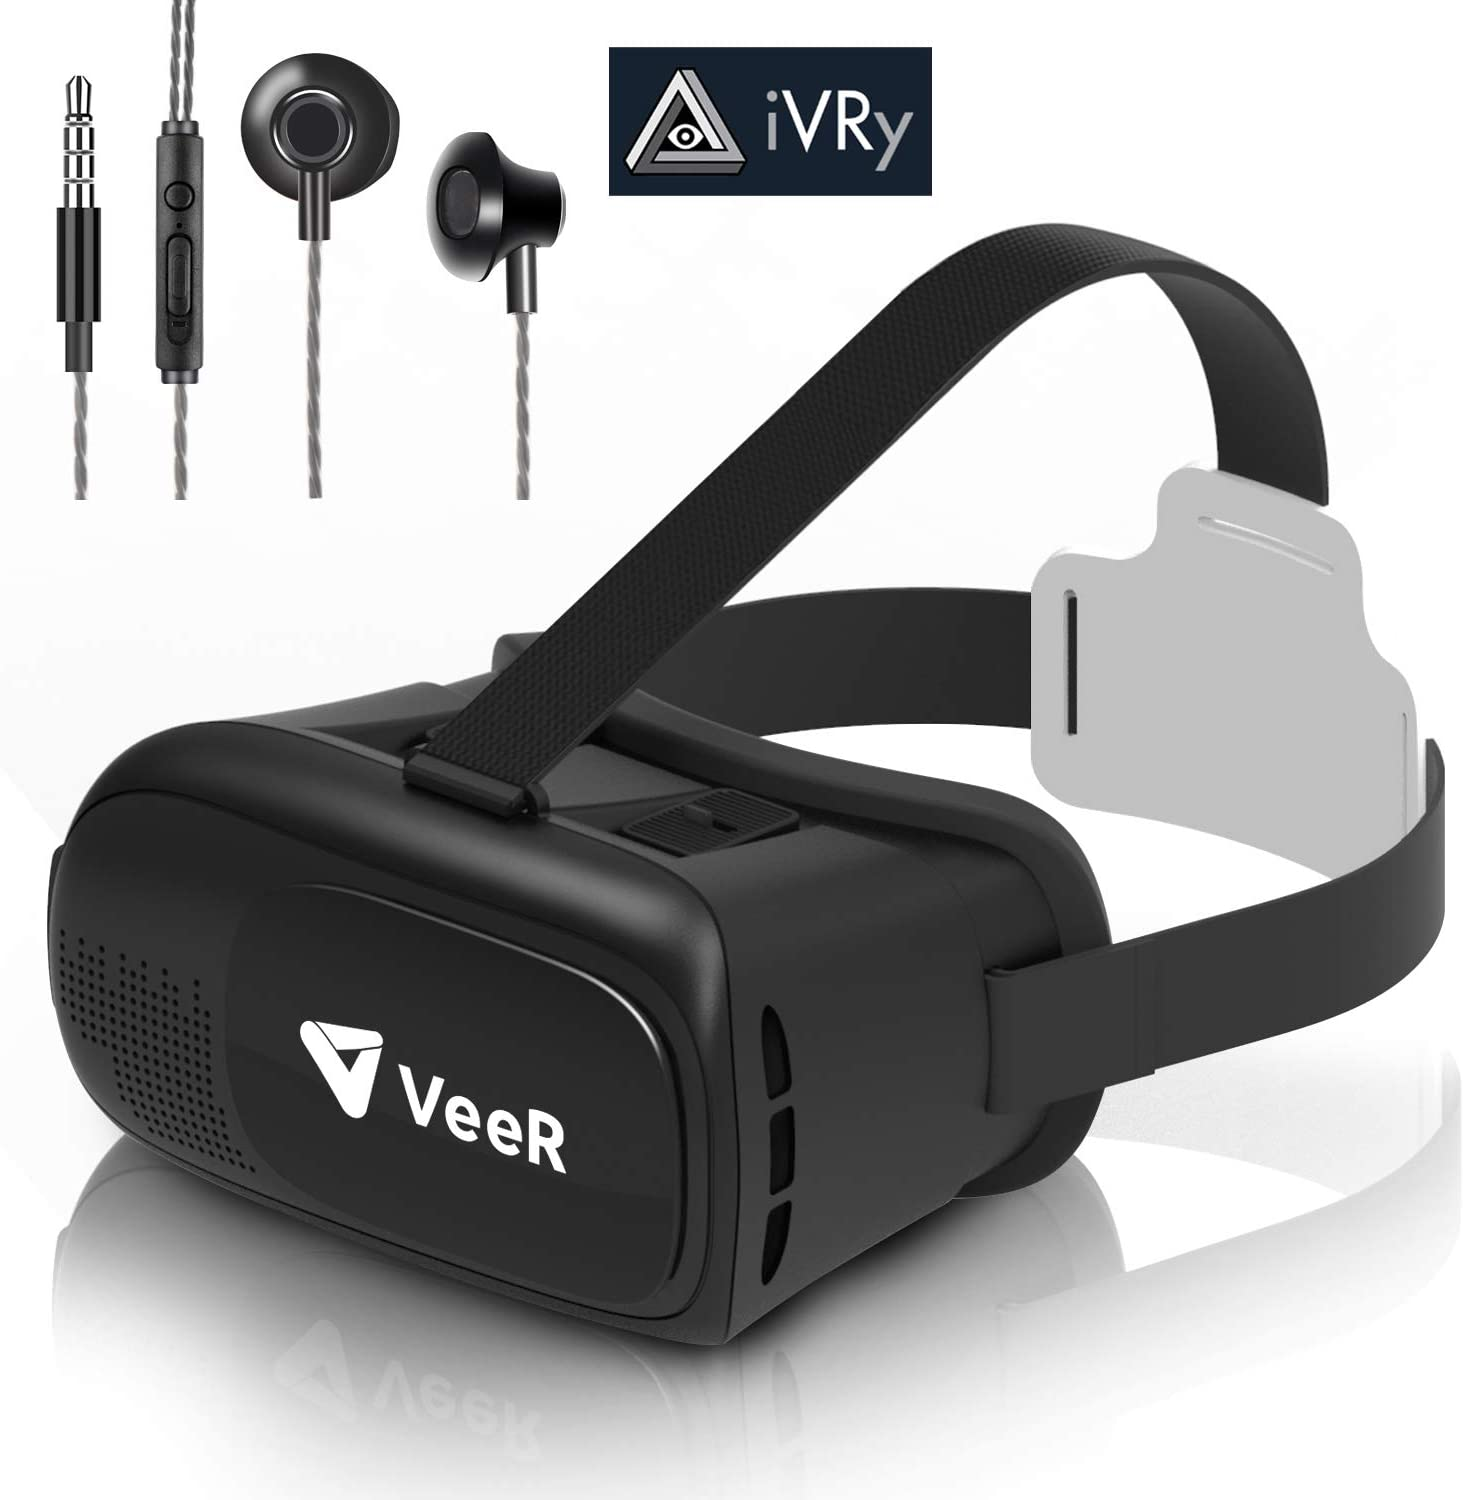 VeeR Origin VR Headset, Universal Virtual Reality Goggles Ver2.0 for 360 Movies&Video with Powerful Ivry Games,Compatible with Android Smartphone & iPhone, 3D VR Glasses with in-Ear Earbud Headphone